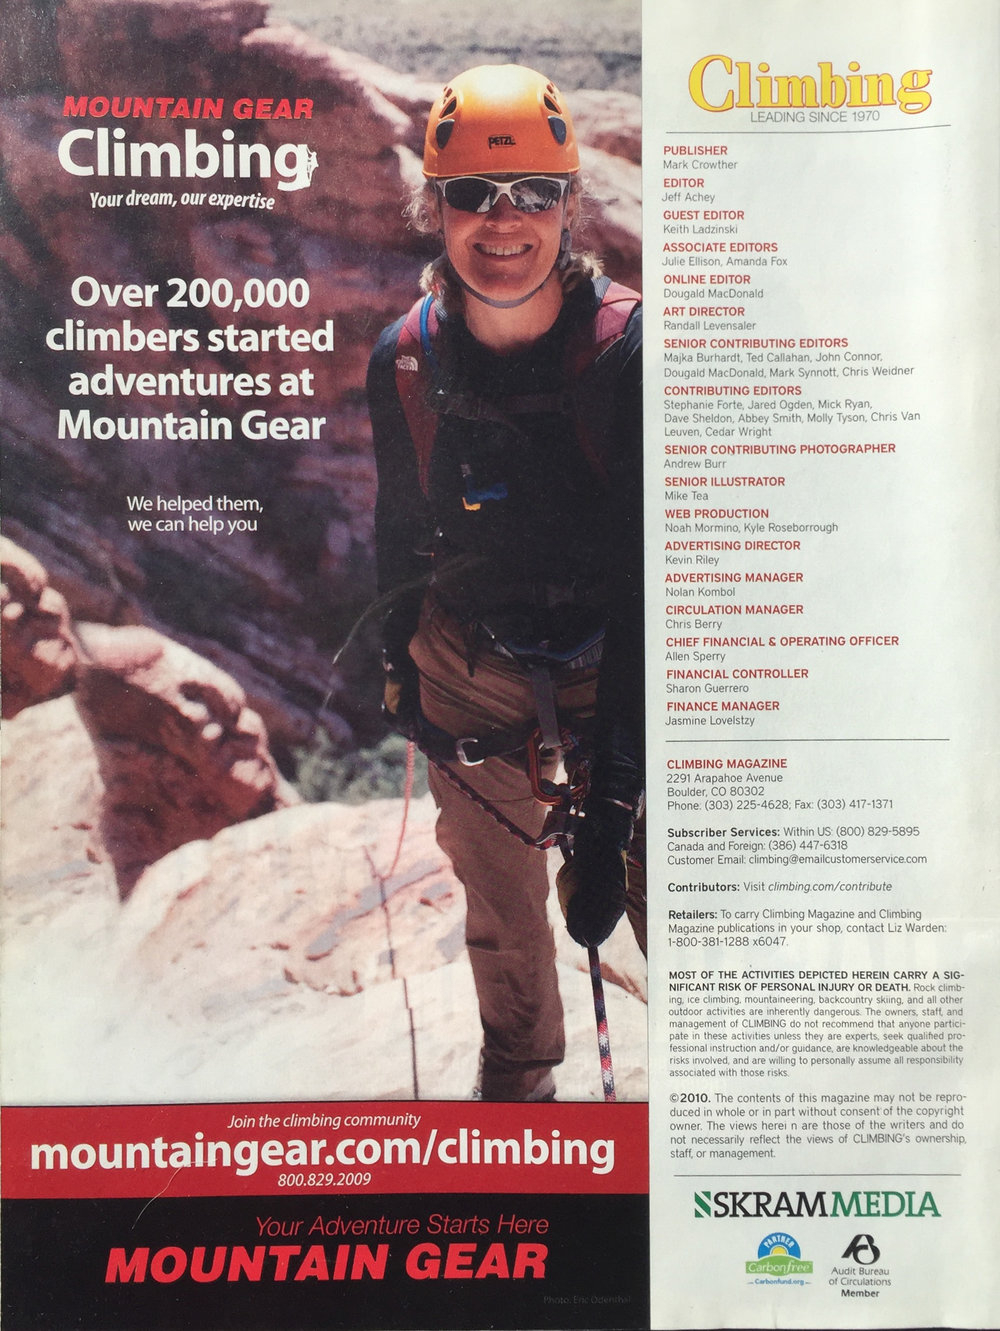 MOUNTAIN GEAR EVENT ADVERTISEMENT   RED ROCK RENDEZVOUS | LAS VEGAS   IMAGE | ERIC ODENTHAL